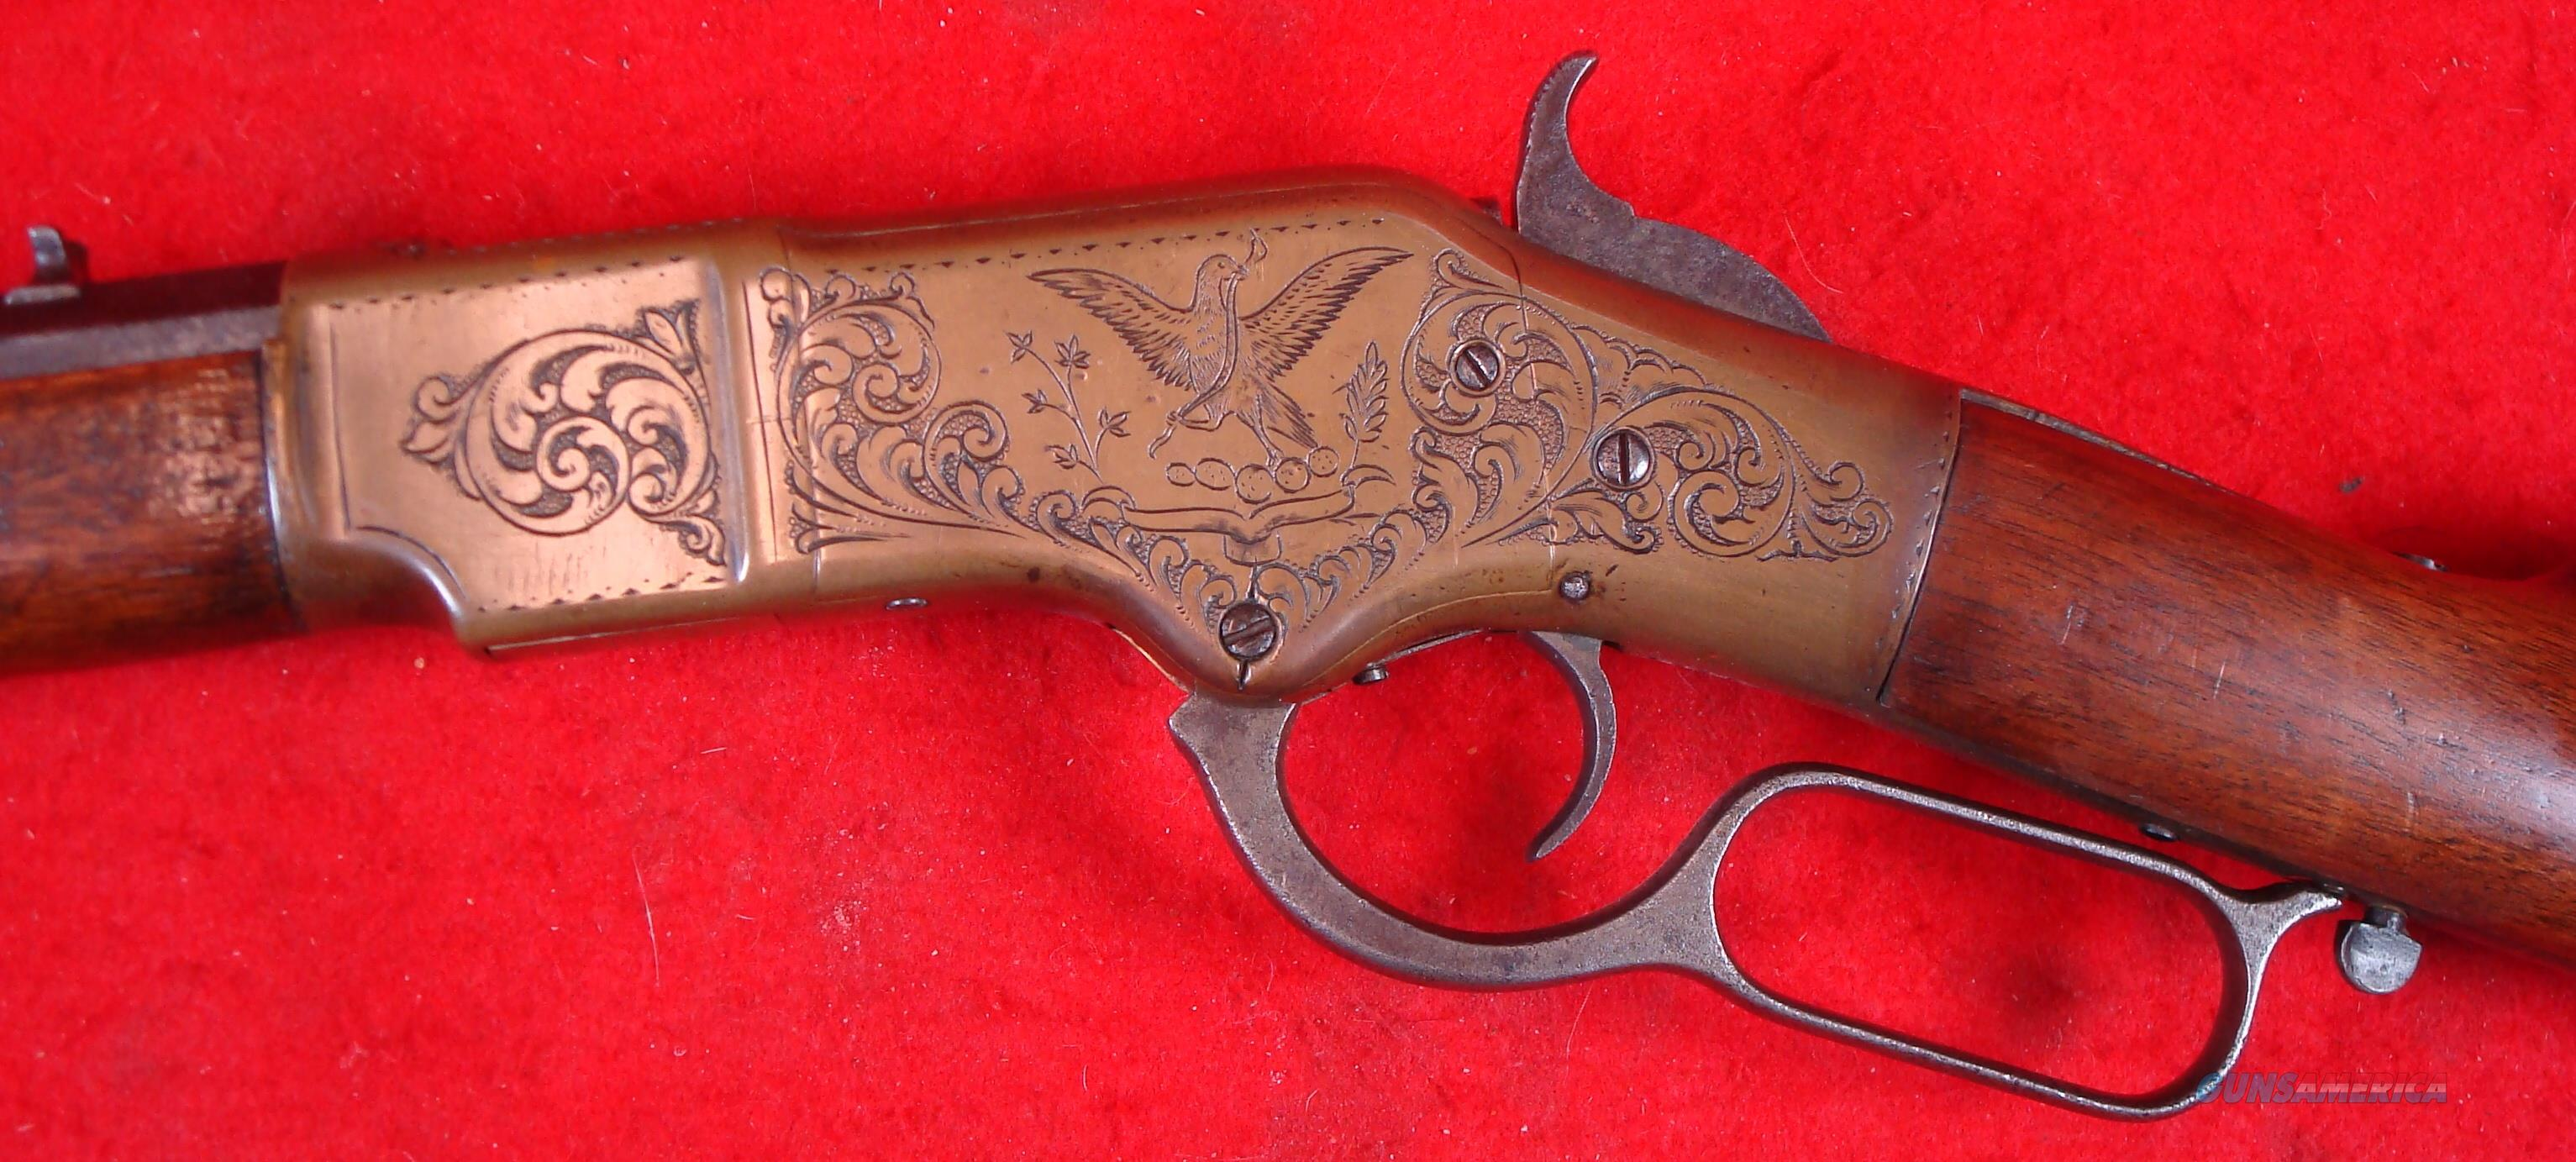 Winchester 1866 Rifle Engraved  Guns > Rifles > Winchester Rifles - Pre-1899 Lever